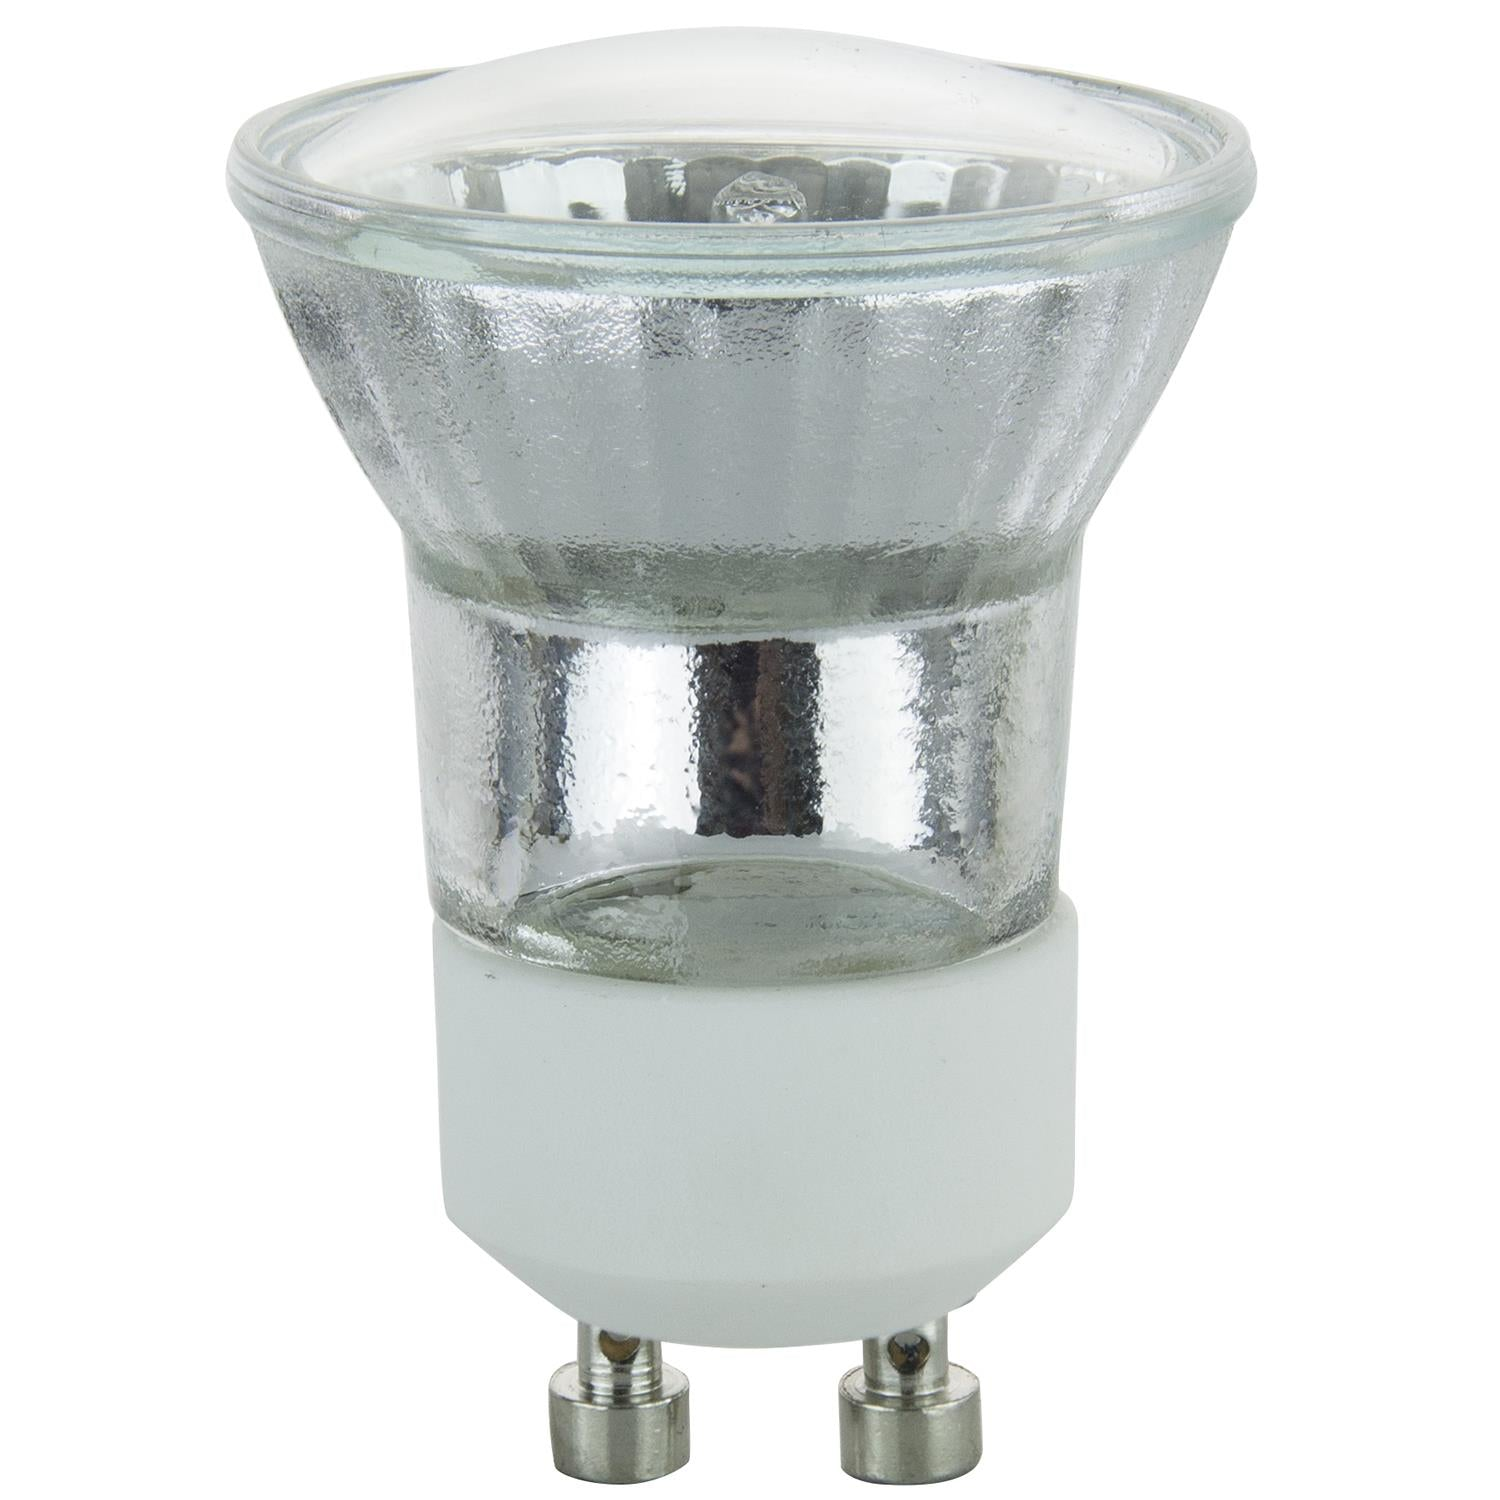 SUNLITE 20w FTD 120v GU10 Flood MR11 Glass Cover Bulb